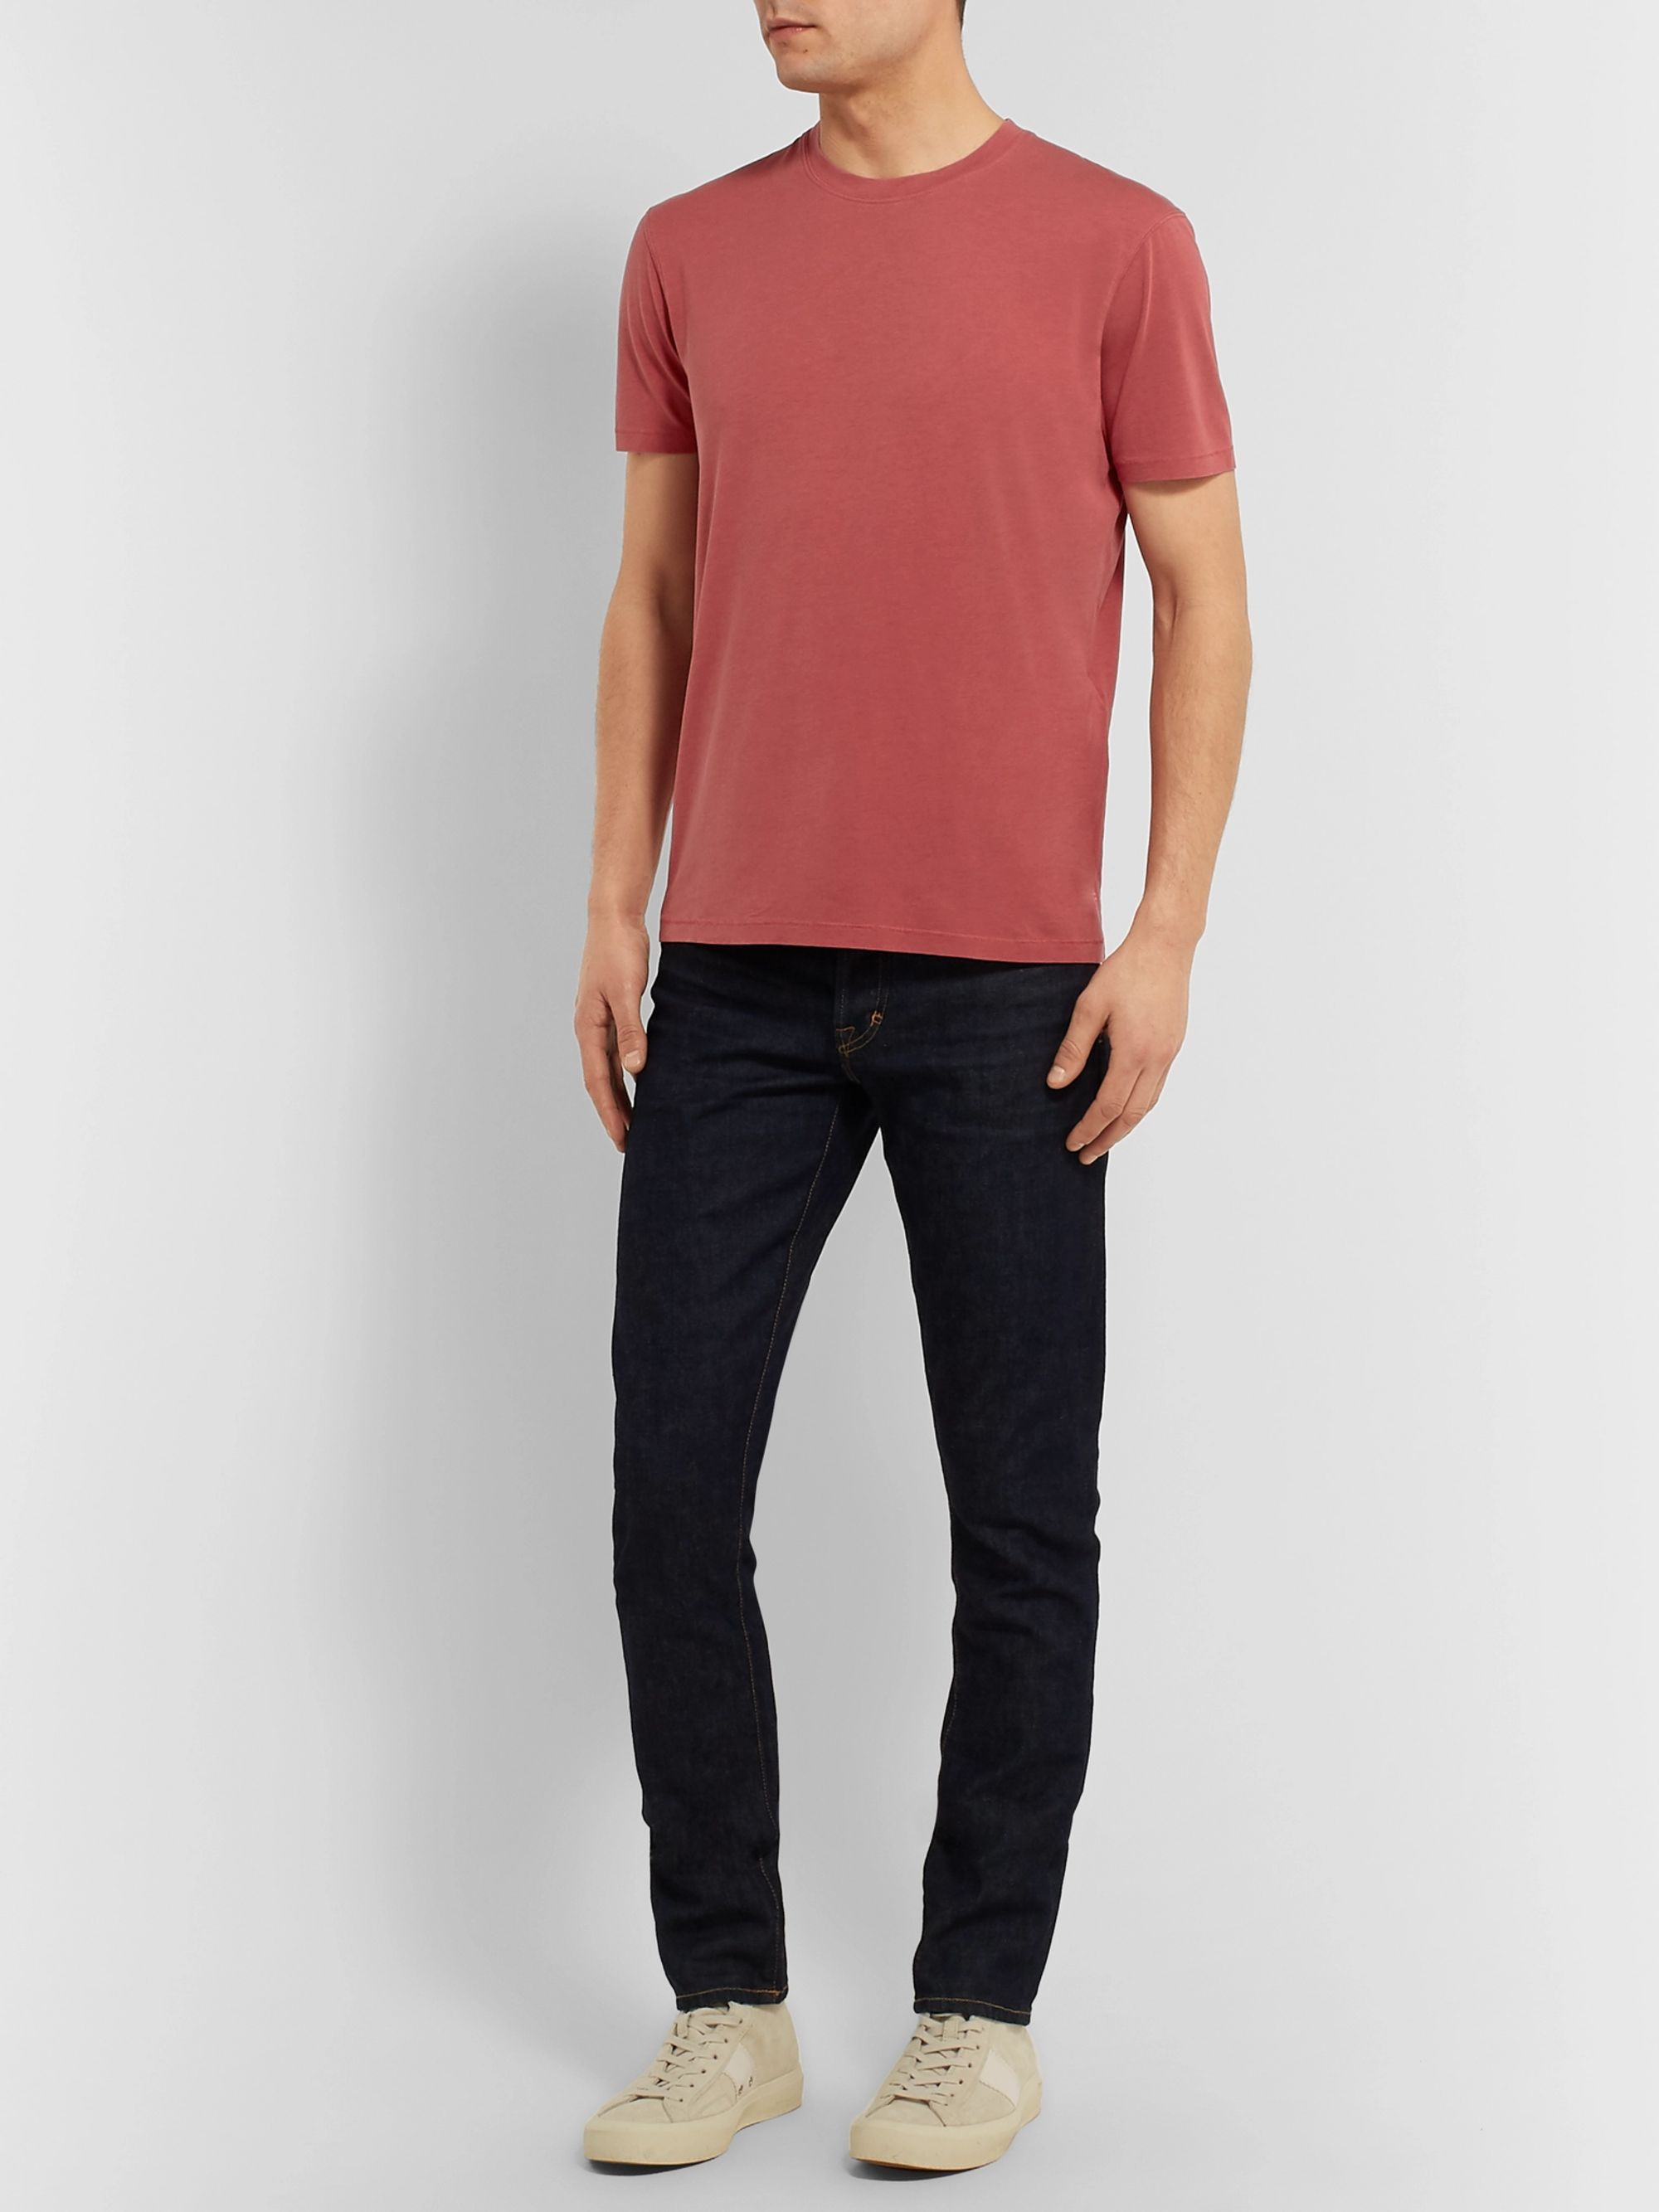 TOM FORD Lyocell and Cotton-Blend Jersey T-Shirt